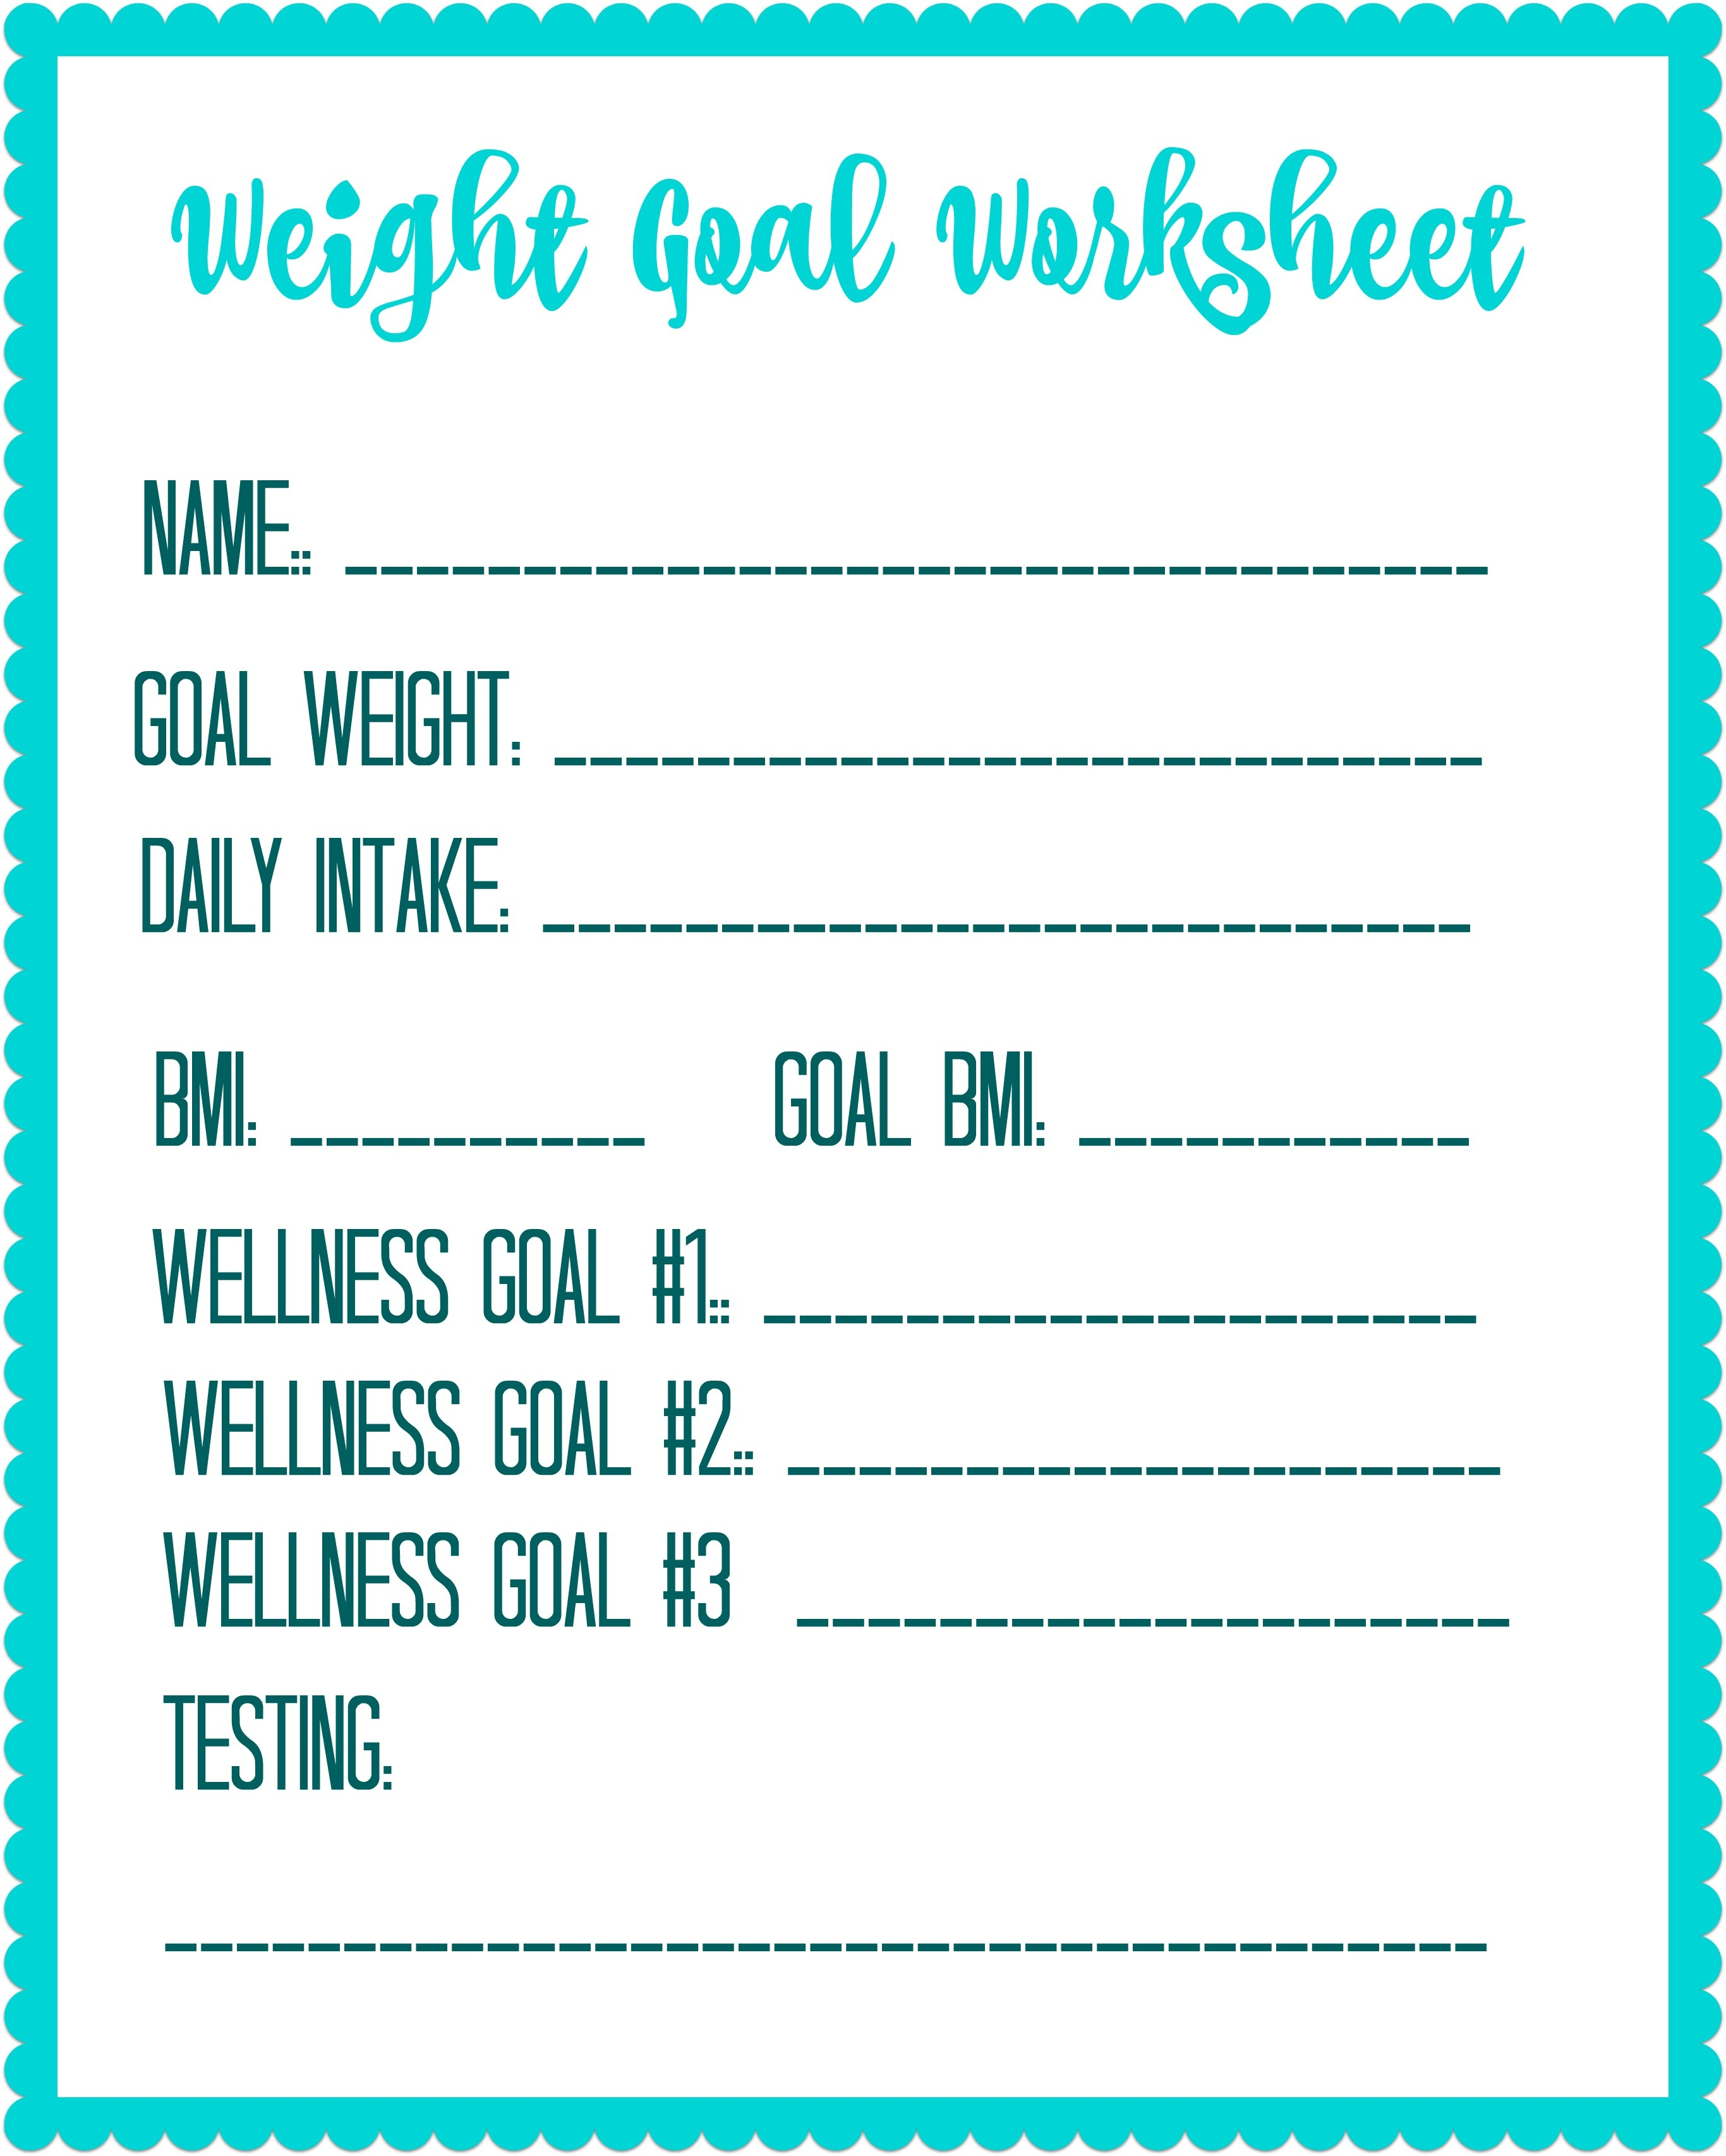 Free Printable Weight Loss Goal Worksheet - Debt Free Spending - Free Printable Calorie Counter Sheet